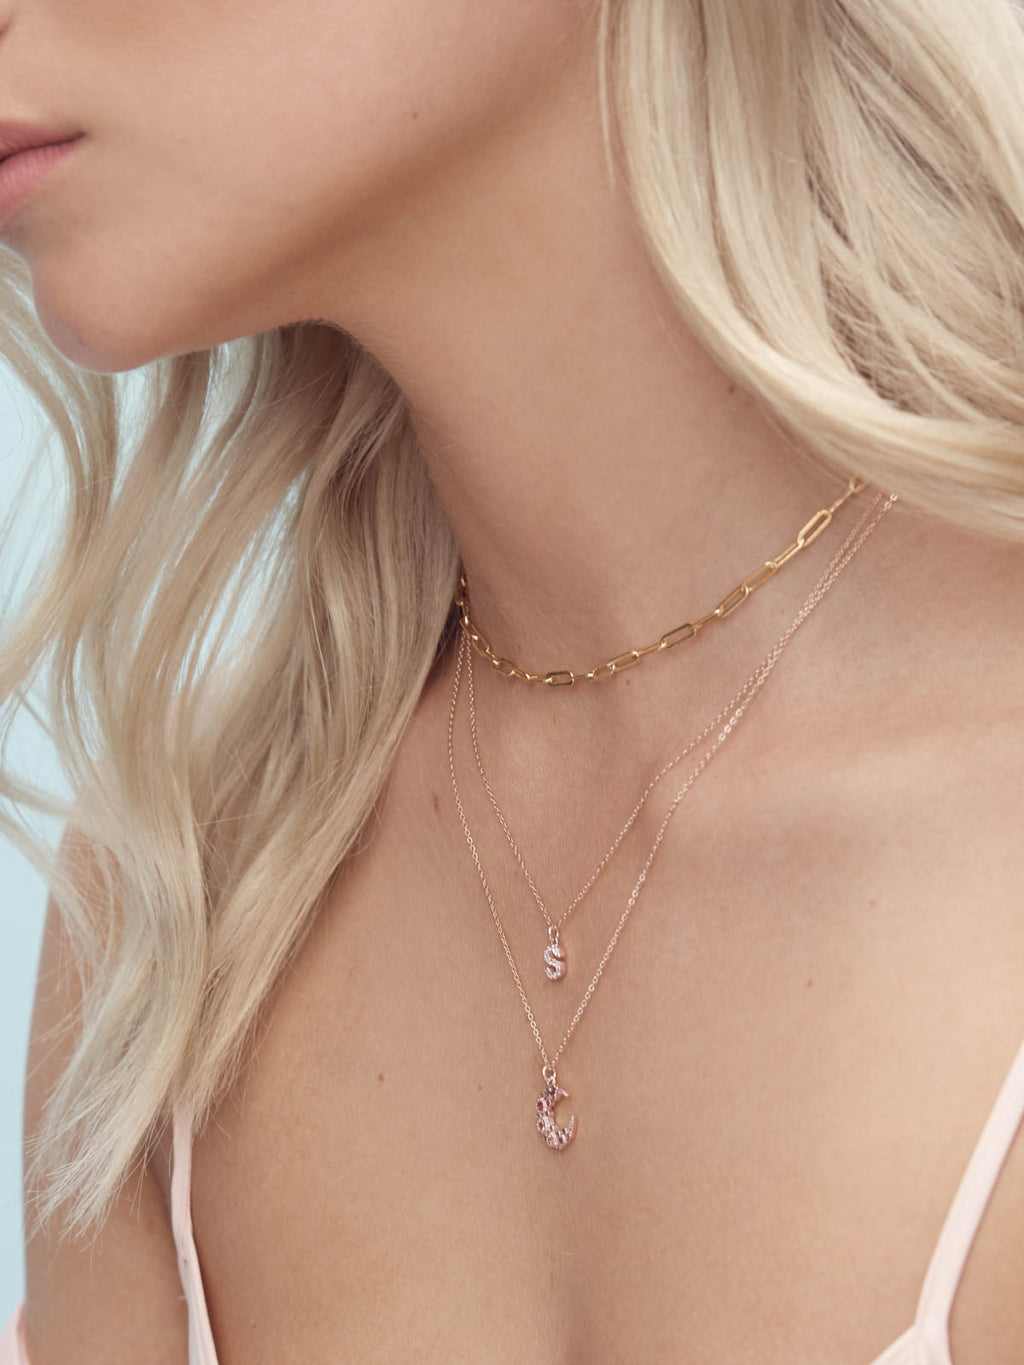 CZ Initial Rose Gold Necklace by The Faint Hearted Jewelry